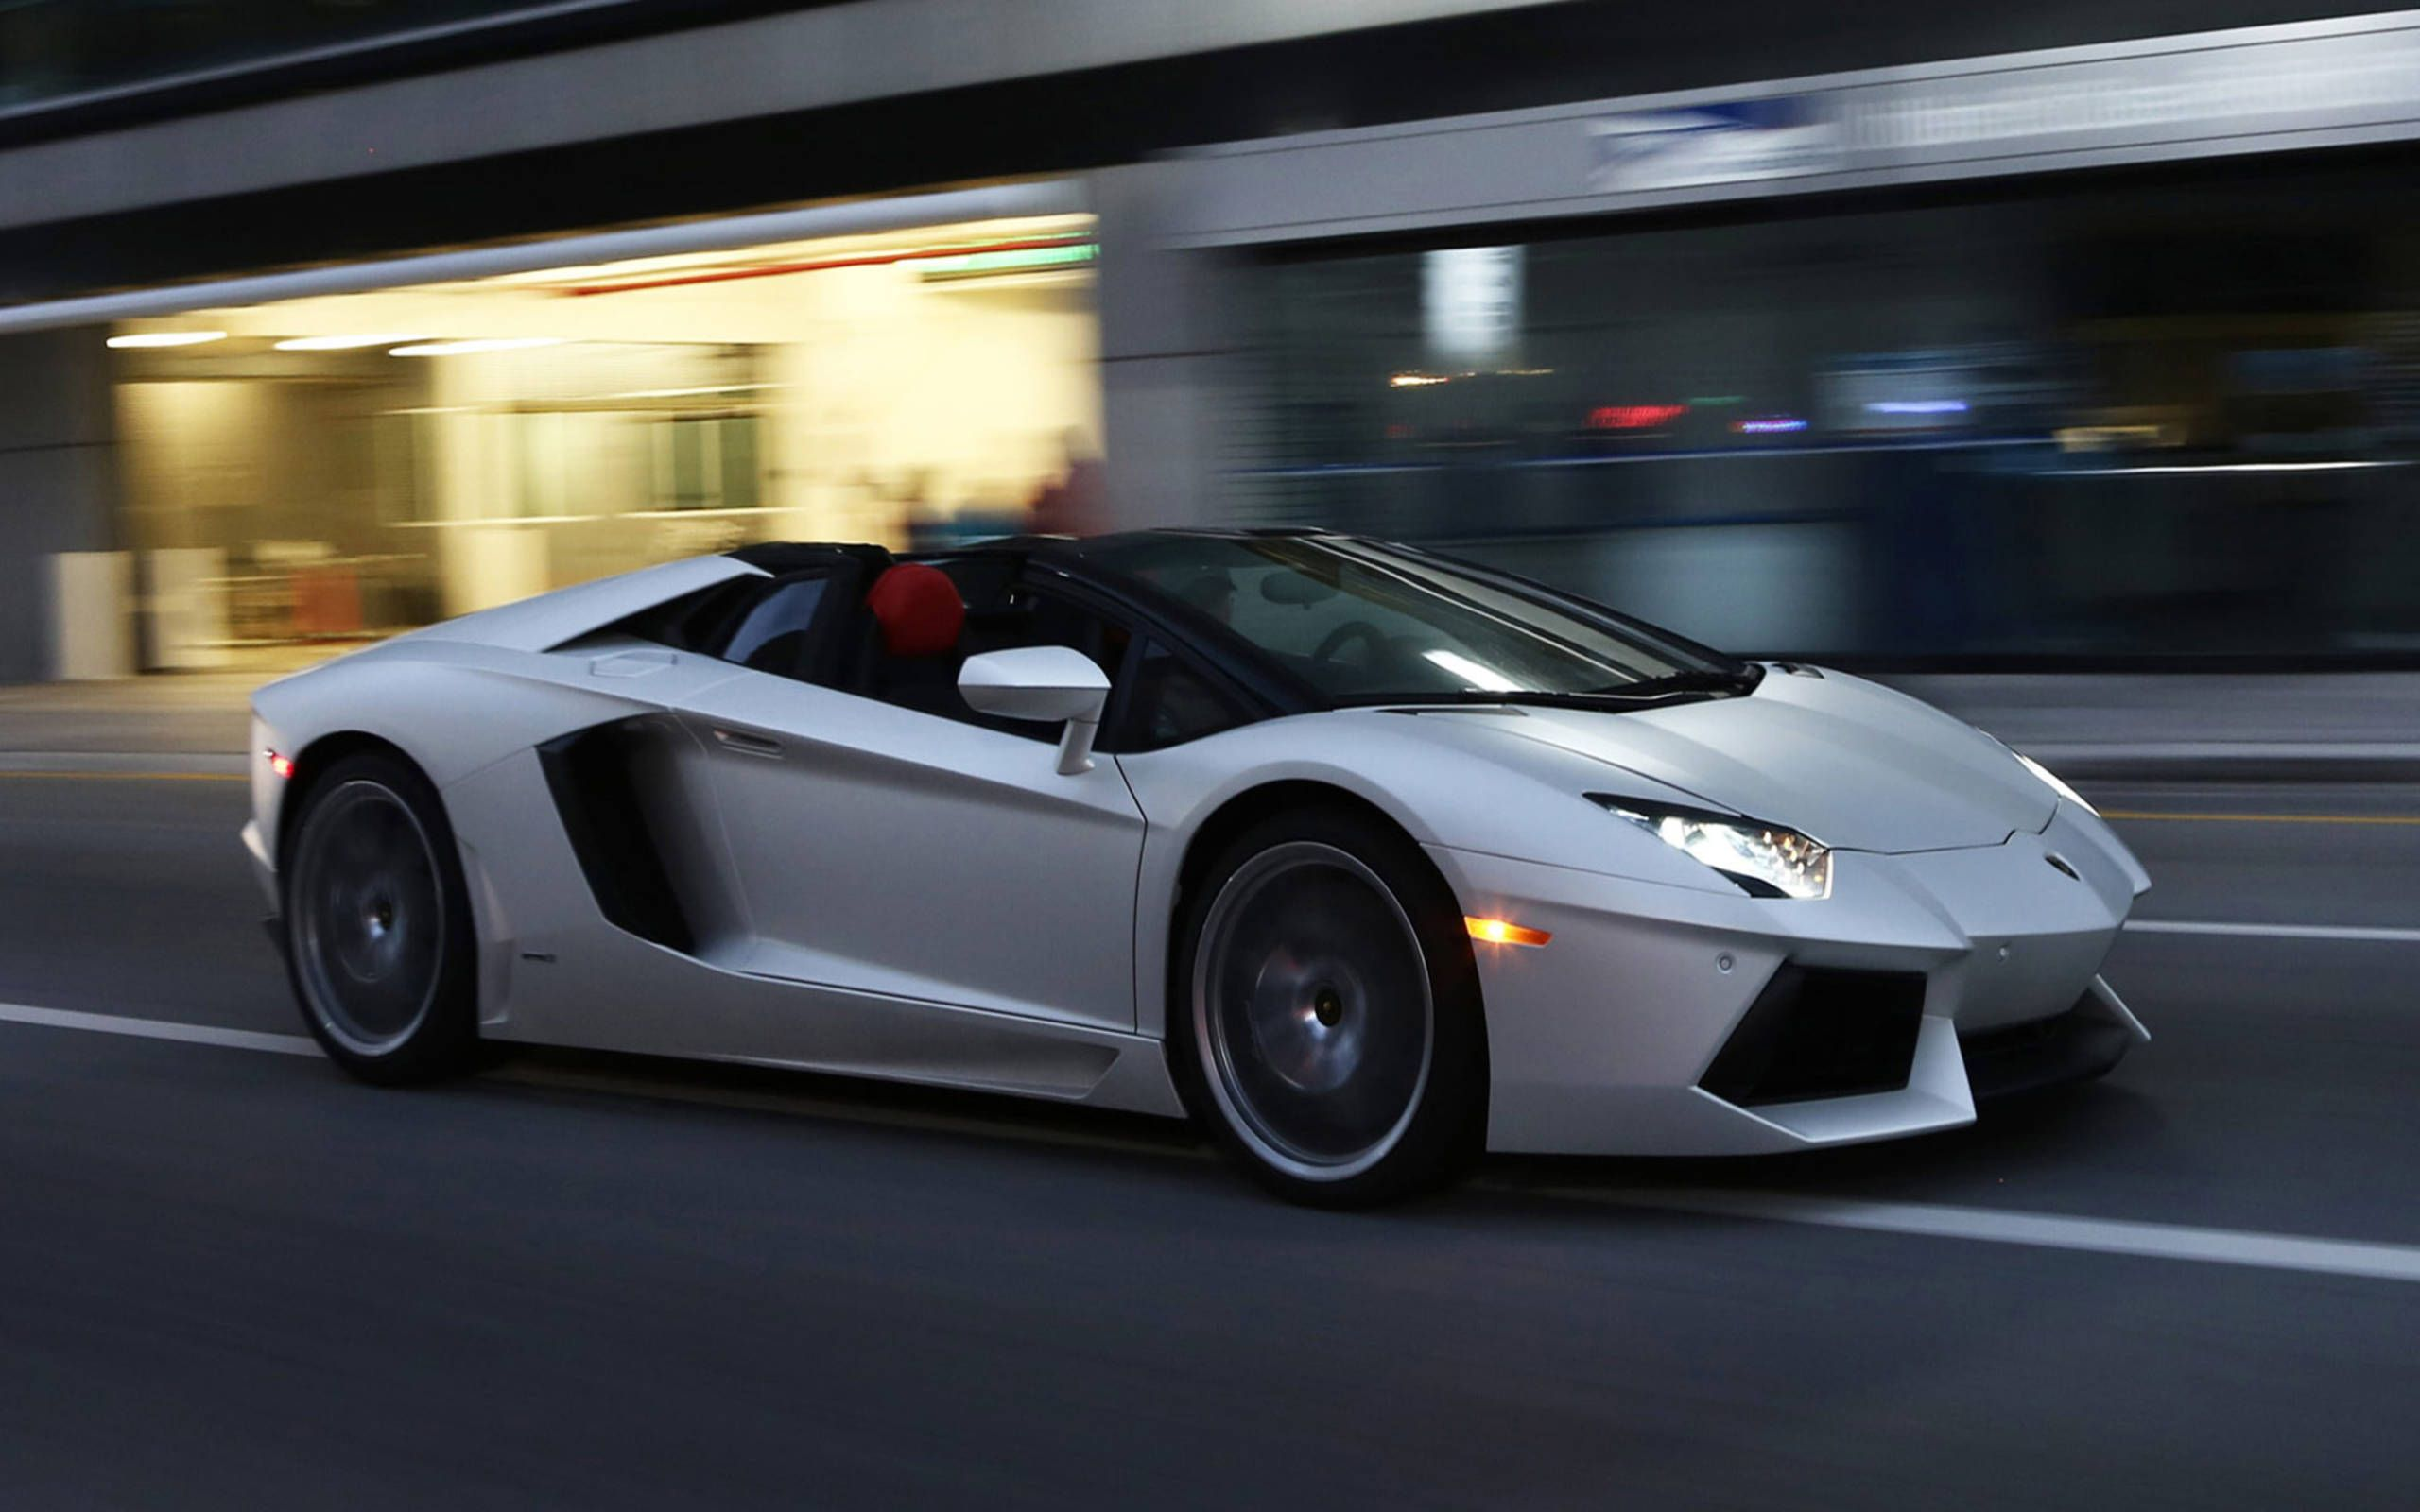 Lamborghini Aventador Sv Roadster Drops Its Top Gets Even More Insane